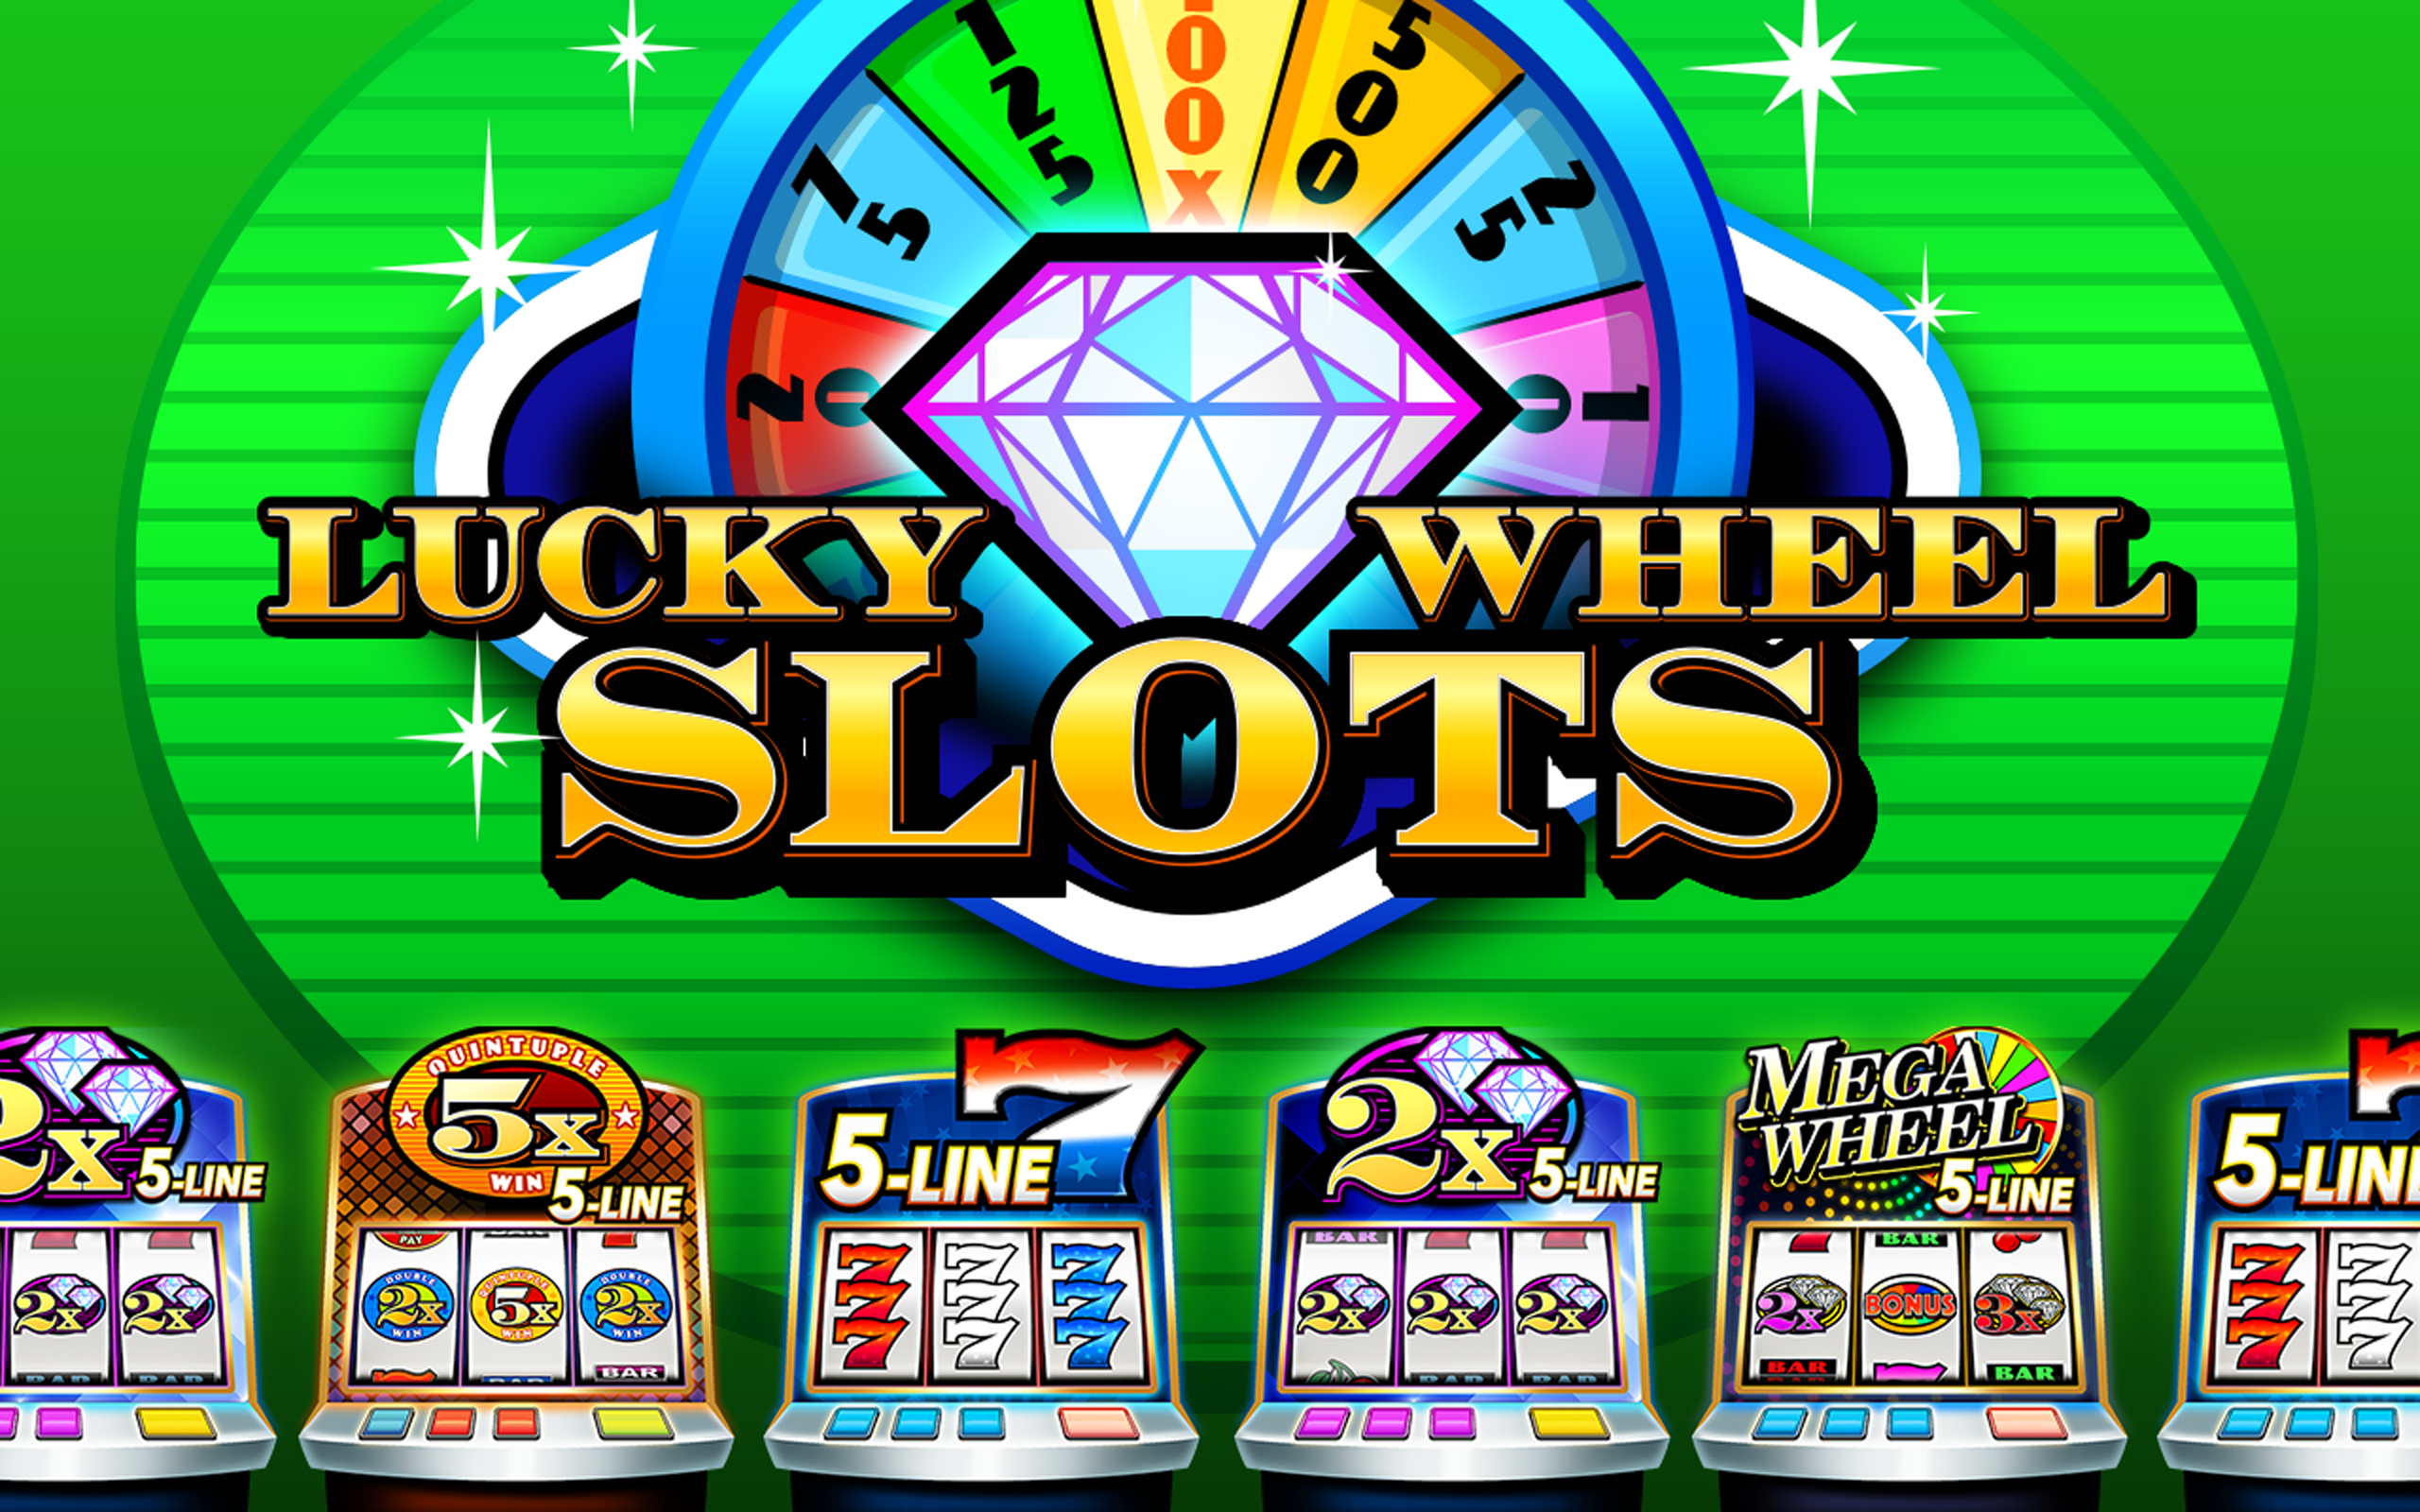 Download Free Slot Games With Bonus Rounds